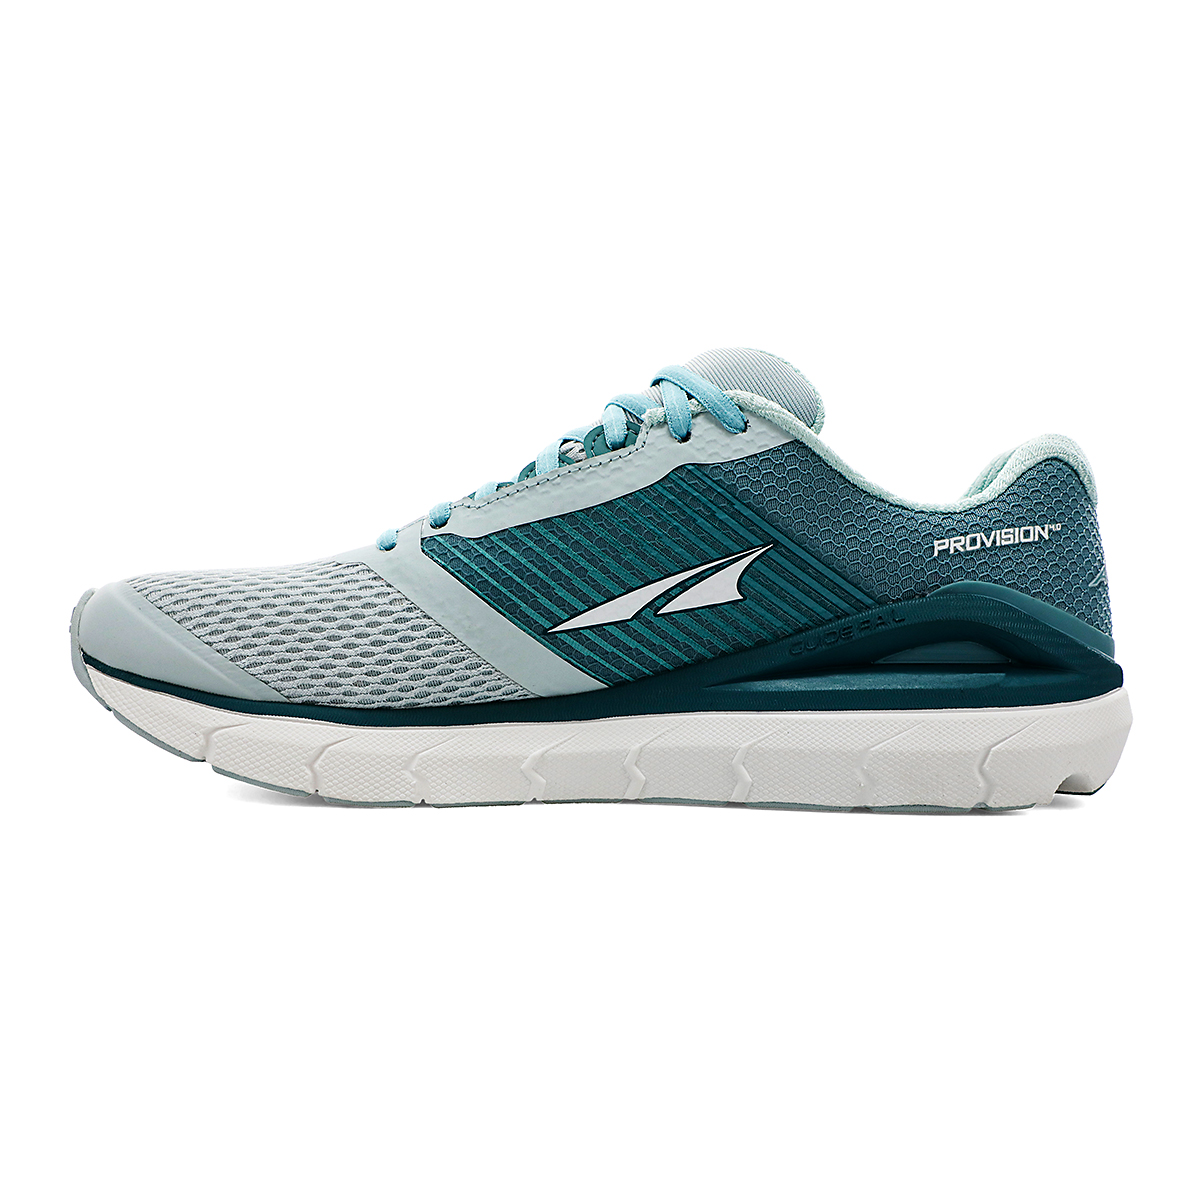 Women's Altra Provision 4 Running Shoe - Color: Ice Flow Blue - Size: 5.5 - Width: Regular, Ice Flow Blue, large, image 2